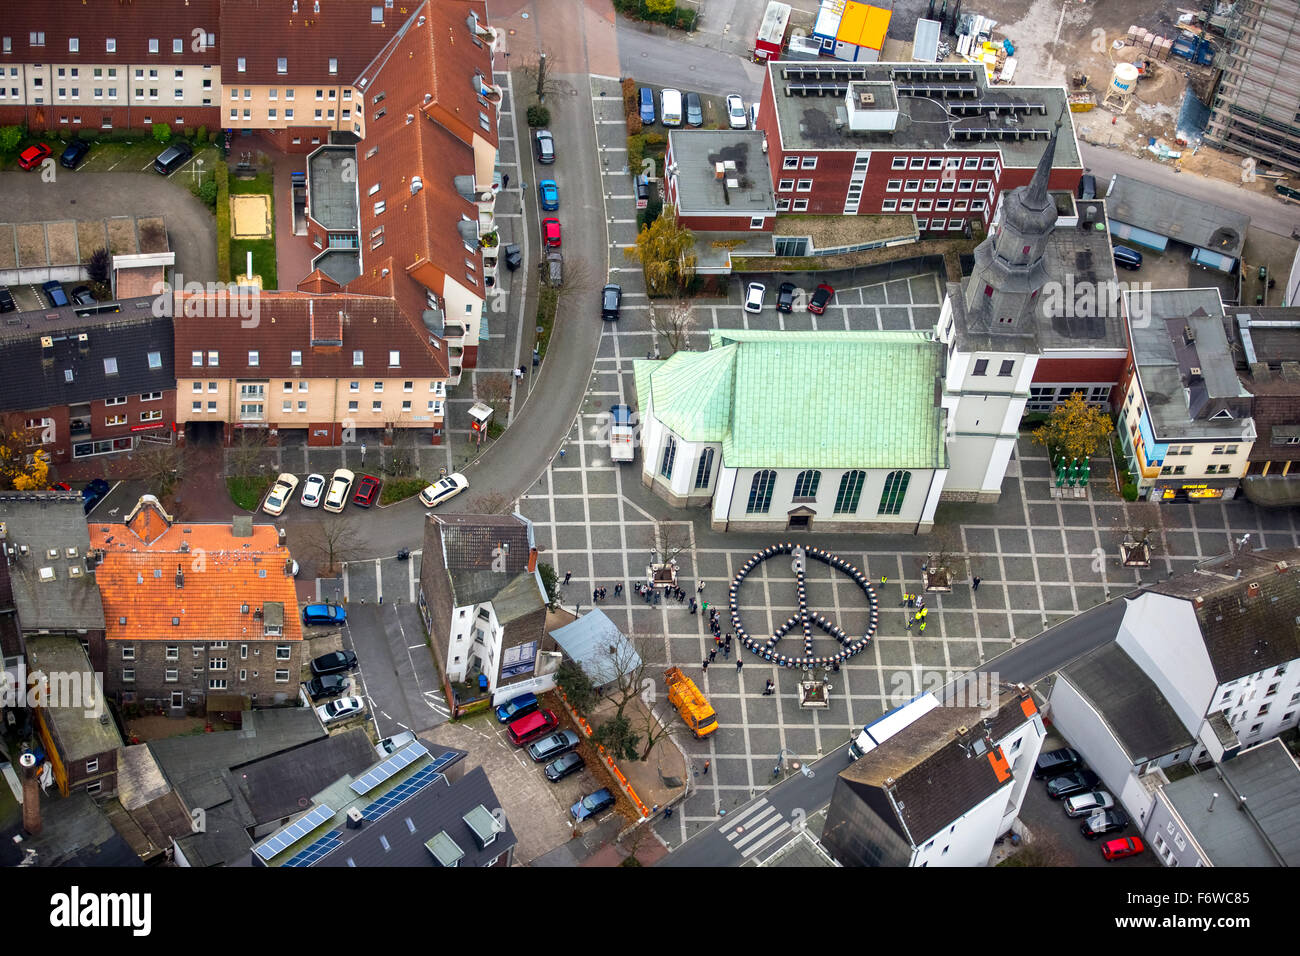 Tons of artworks - In Hammer Kunstquartier, the Luther quarter are delivered 90 recycling bins for art works, Hamm, - Stock Image